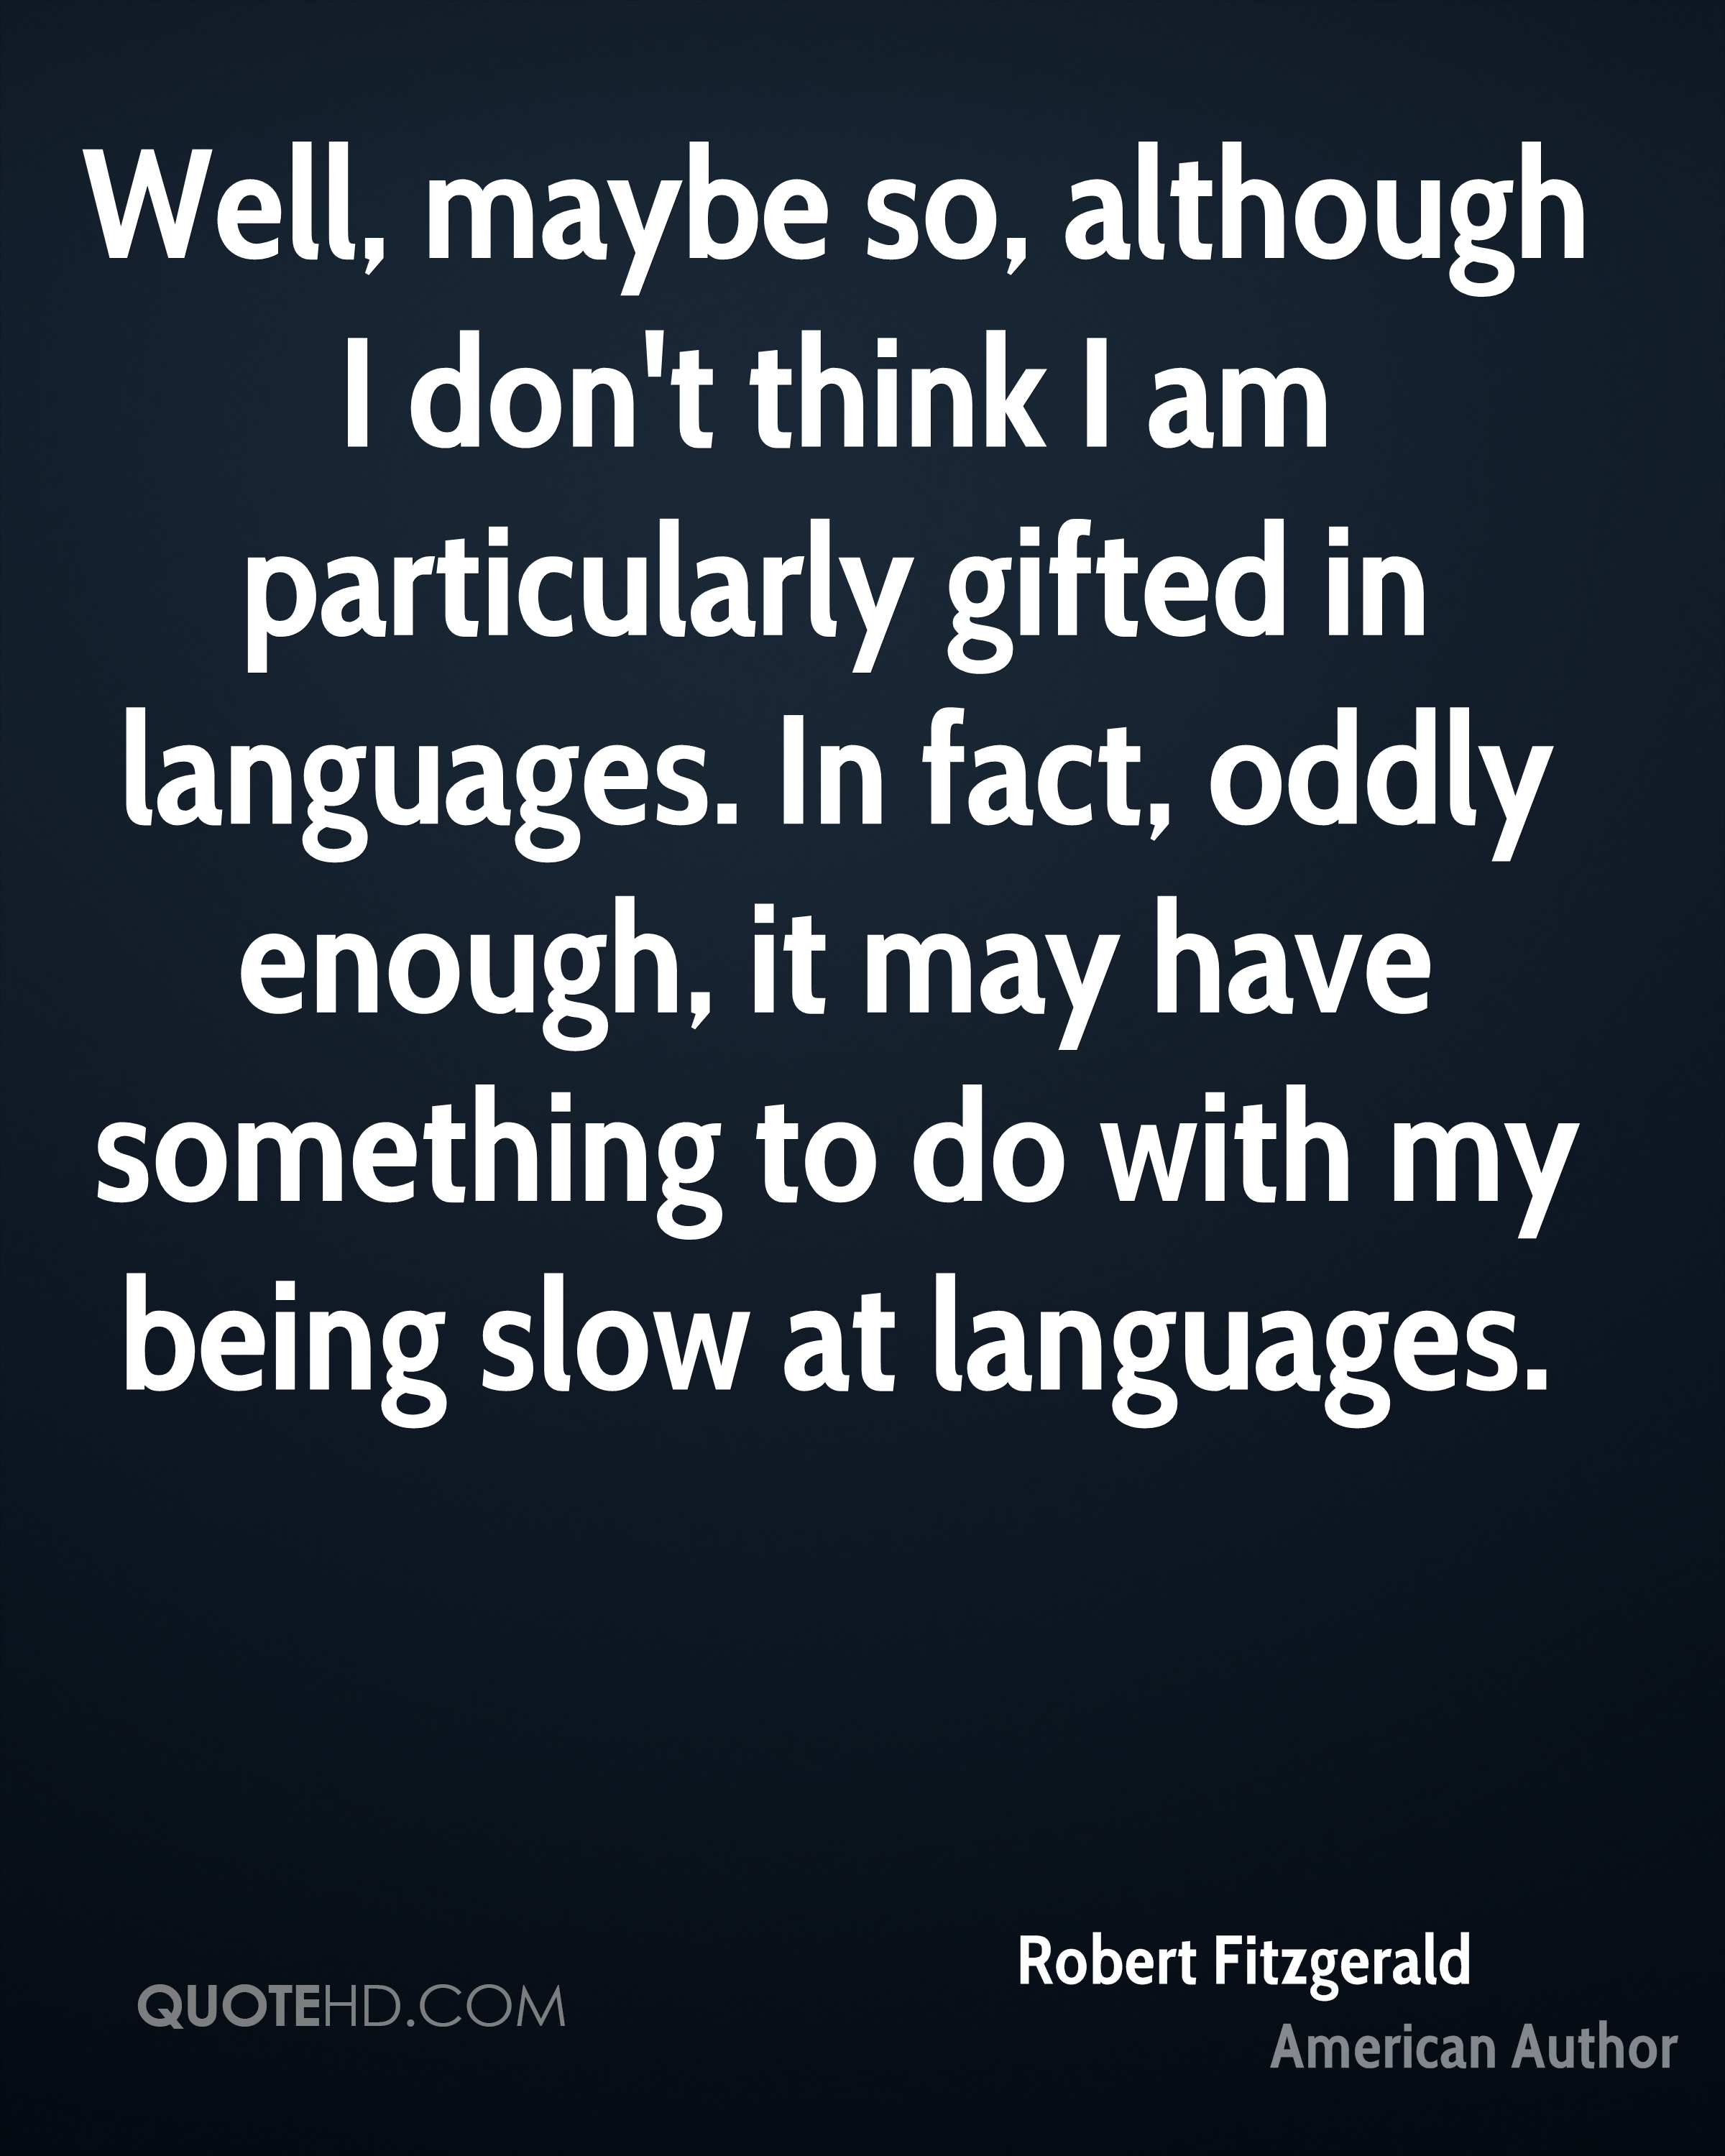 Well, maybe so, although I don't think I am particularly gifted in languages. In fact, oddly enough, it may have something to do with my being slow at languages.